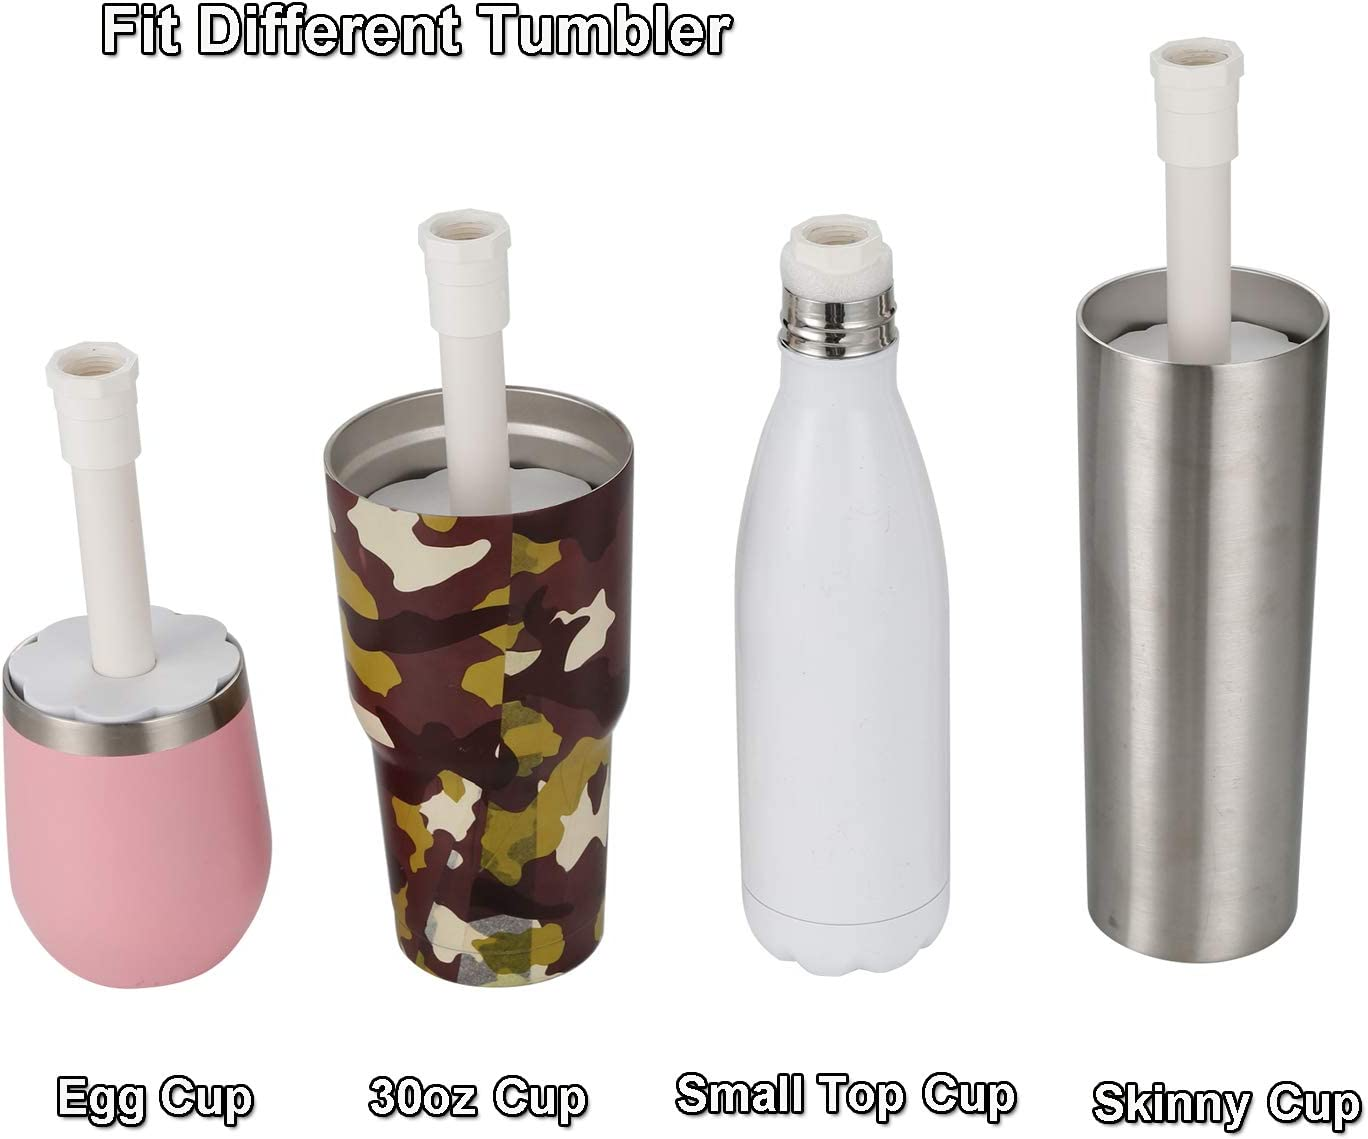 Double Cup Turner with Epoxy Resin Mixer Dual Tumbler Spinner for Tumbler Craft Tumbler Turner Epoxy Resin Mixer